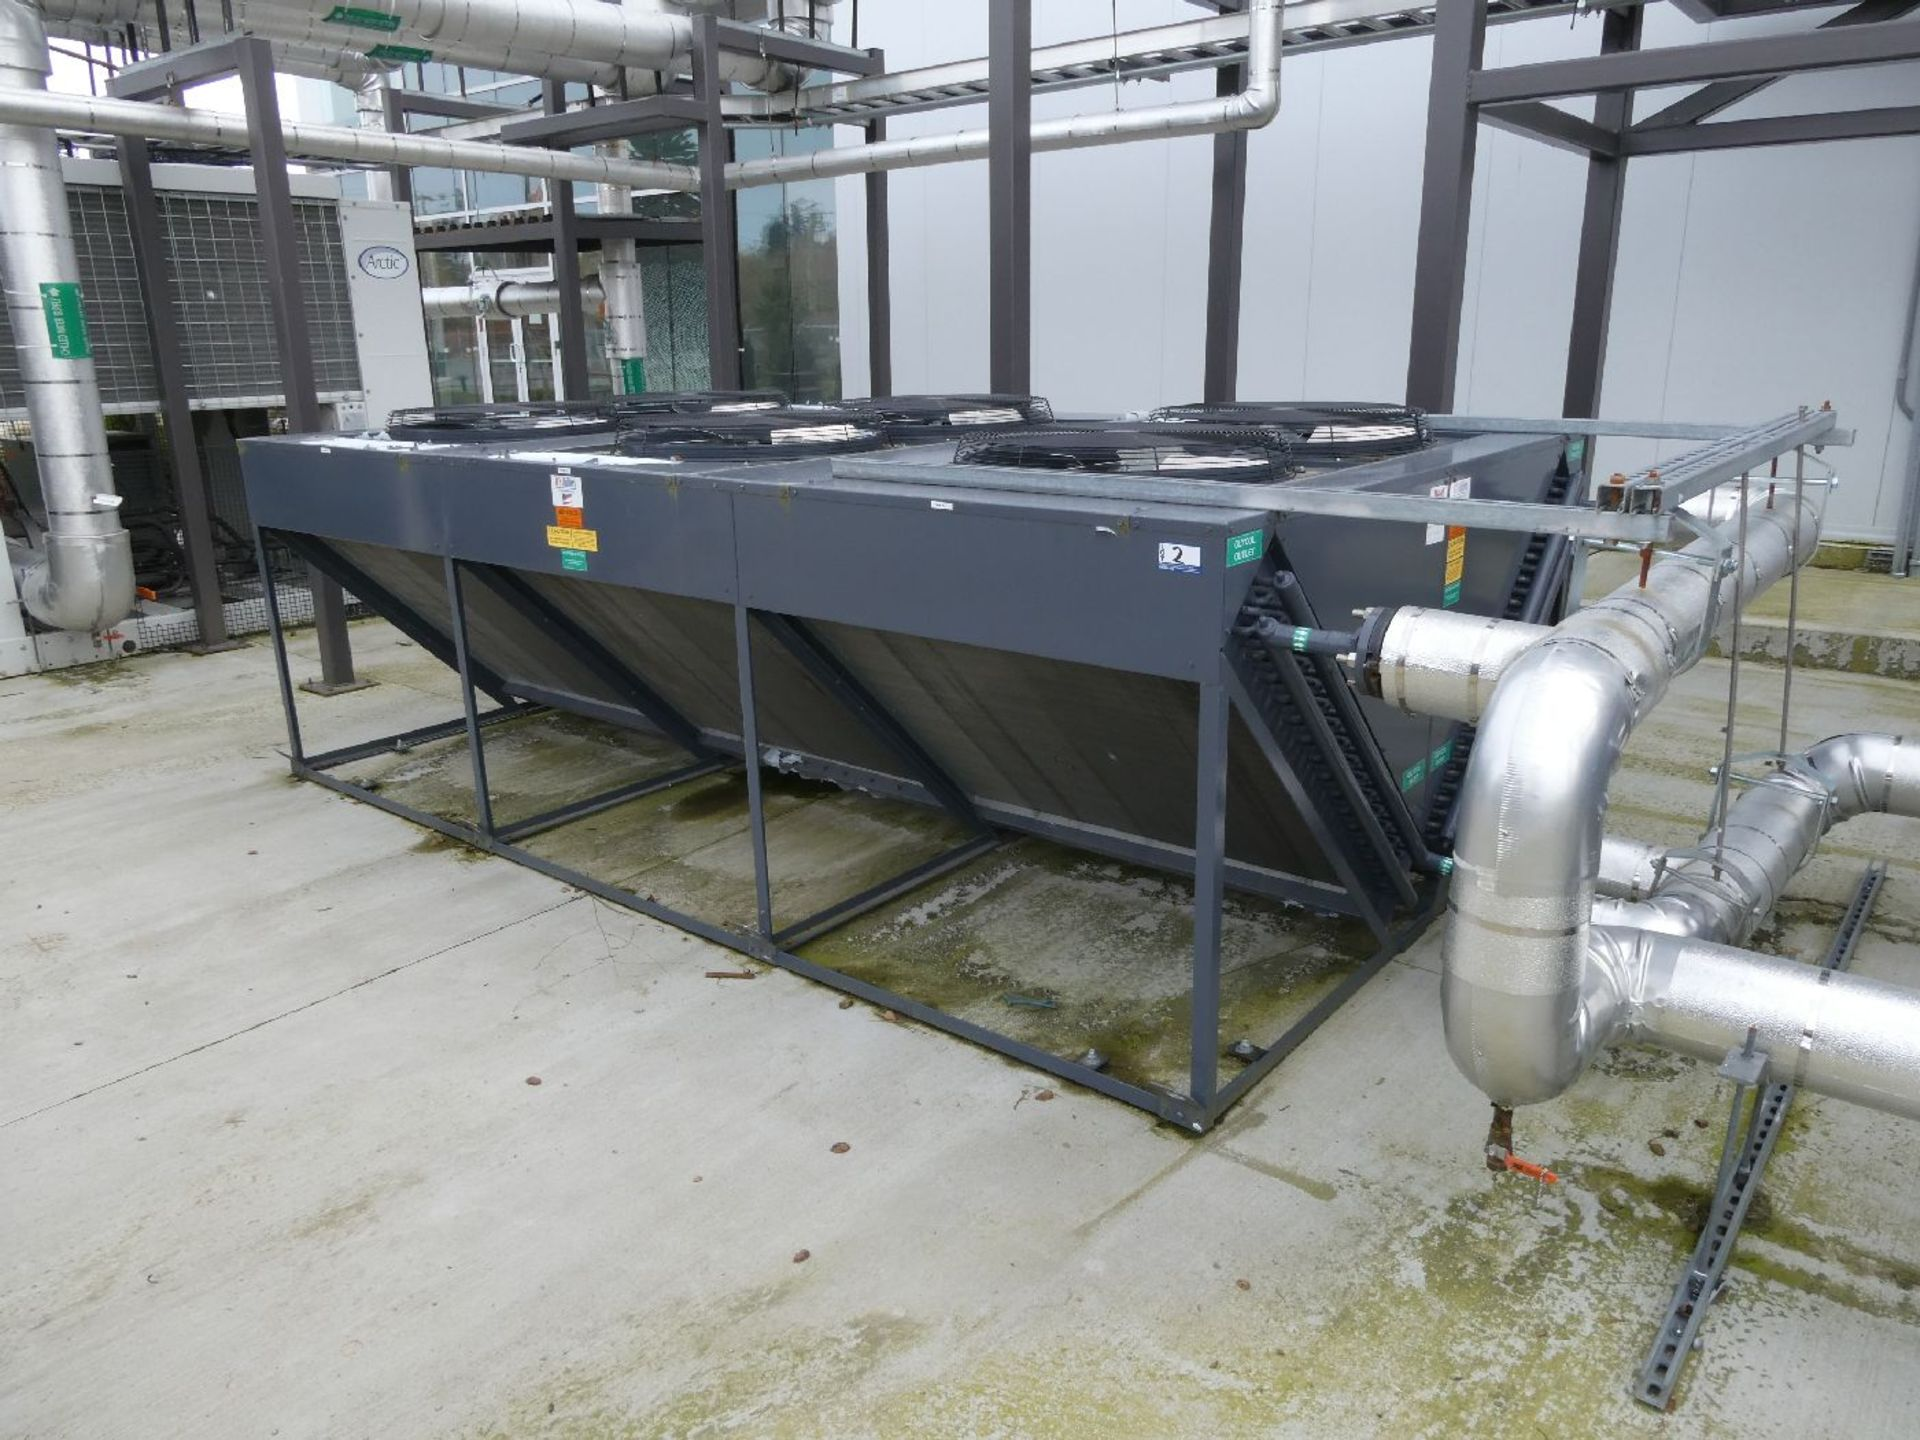 ROTAX Closed Loop Solvent Based Continuous Oil Extraction System - Image 68 of 68